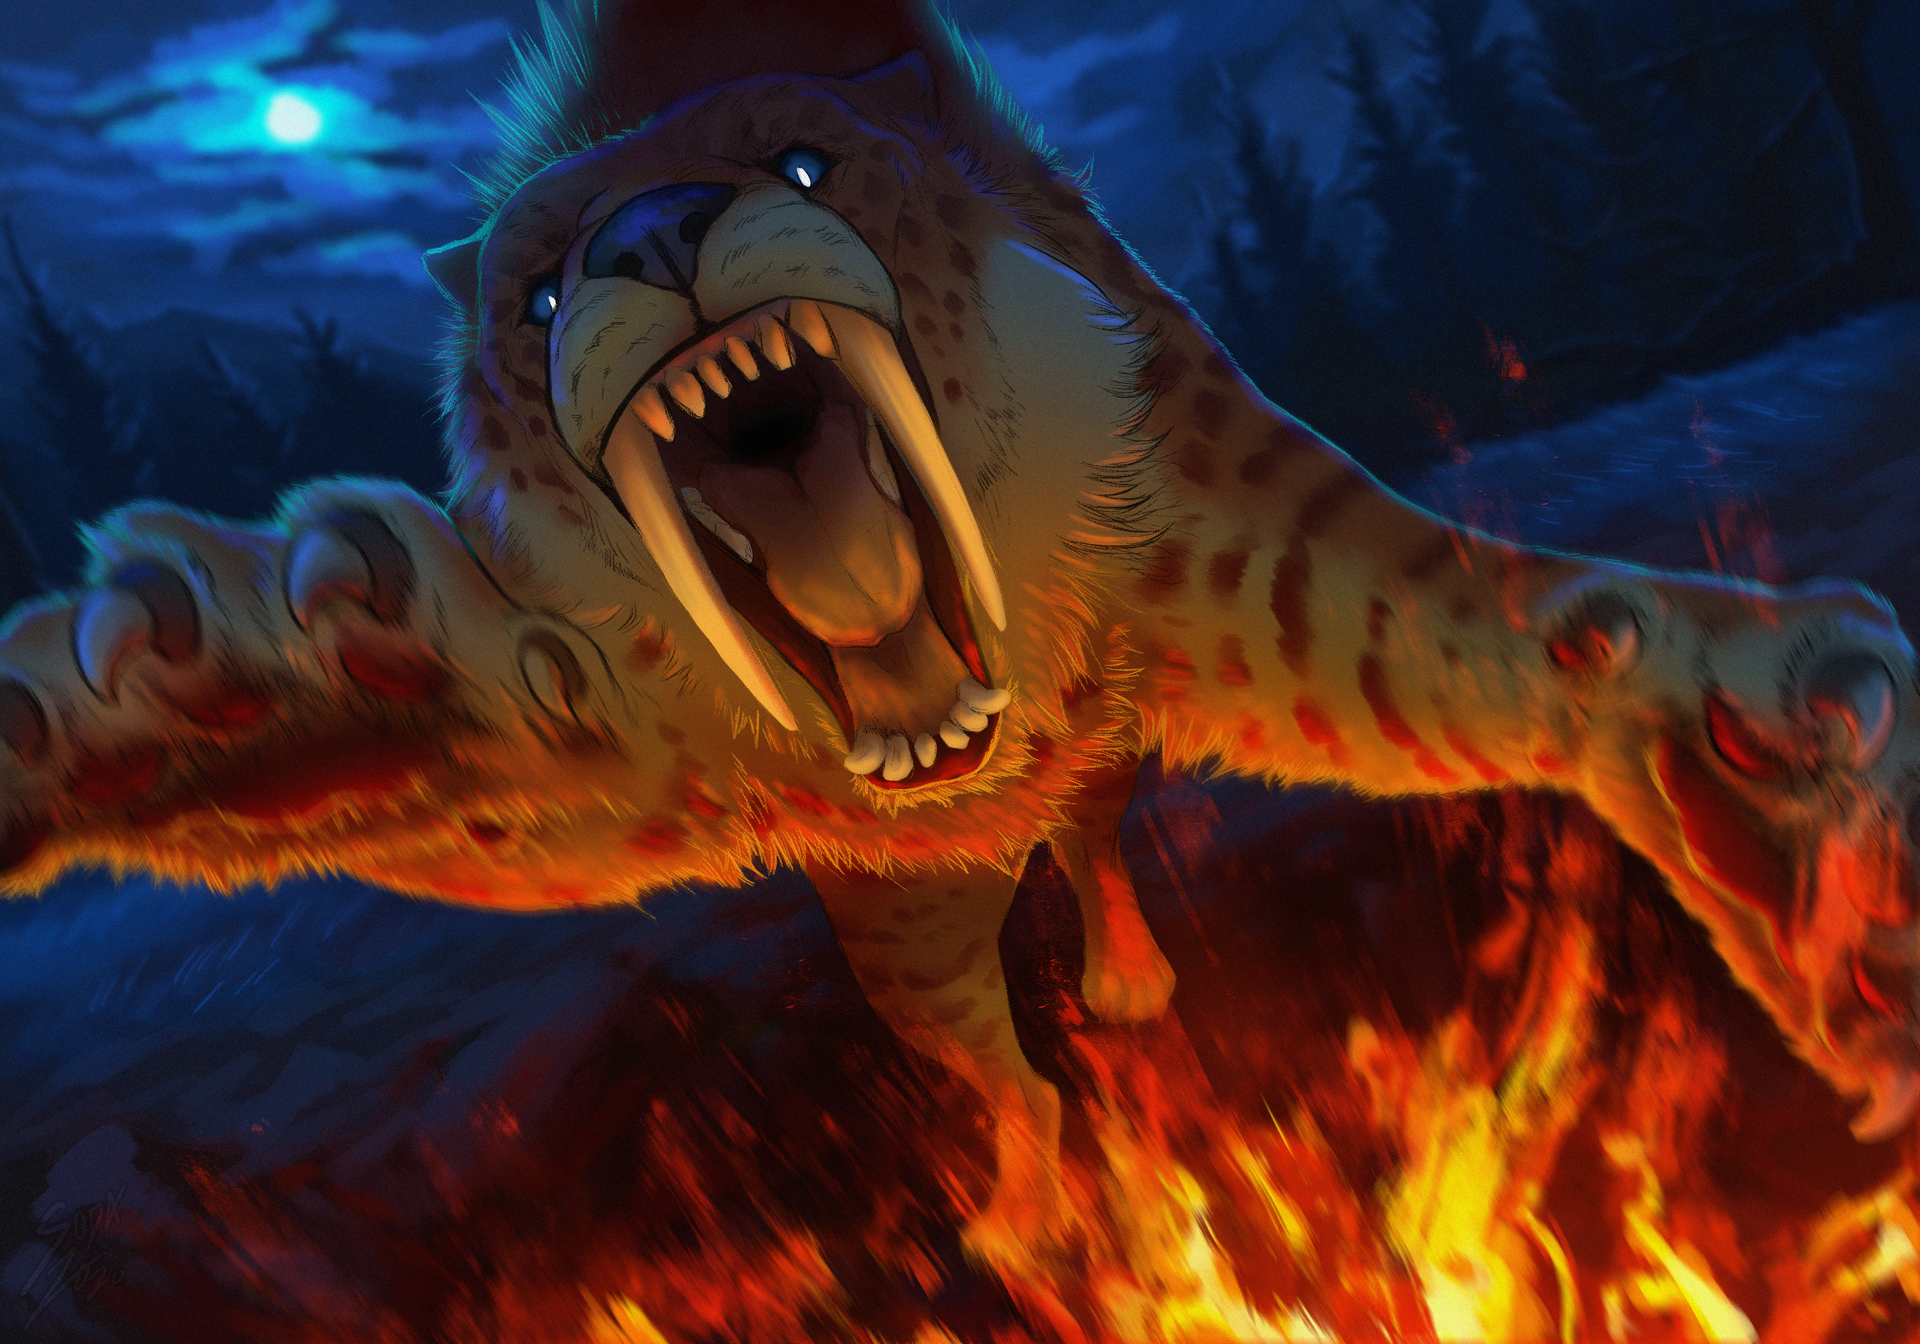 The Roaring Flames